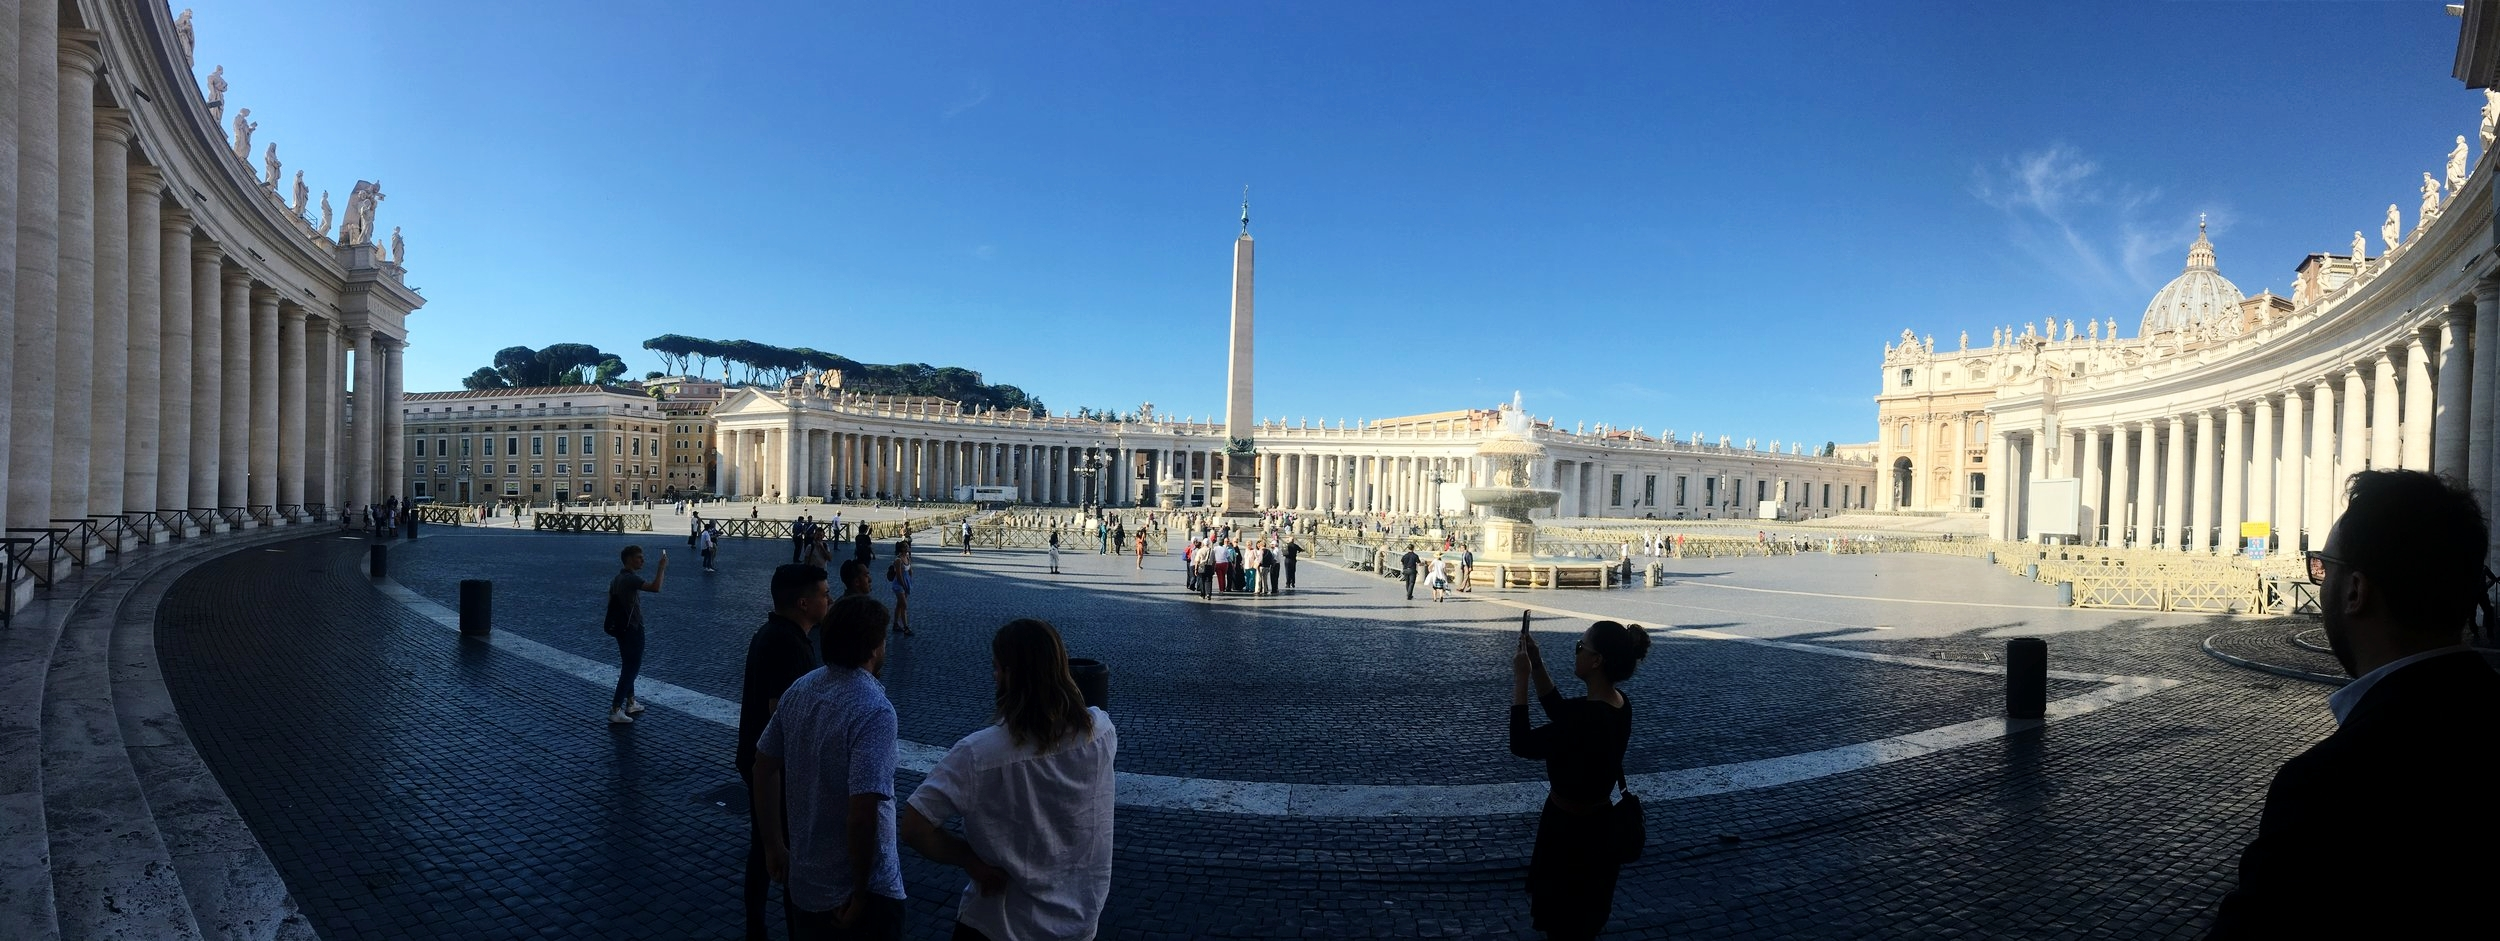 Naomi took a panoramic picture of the St. Peter's square, but no photos really do it justice.